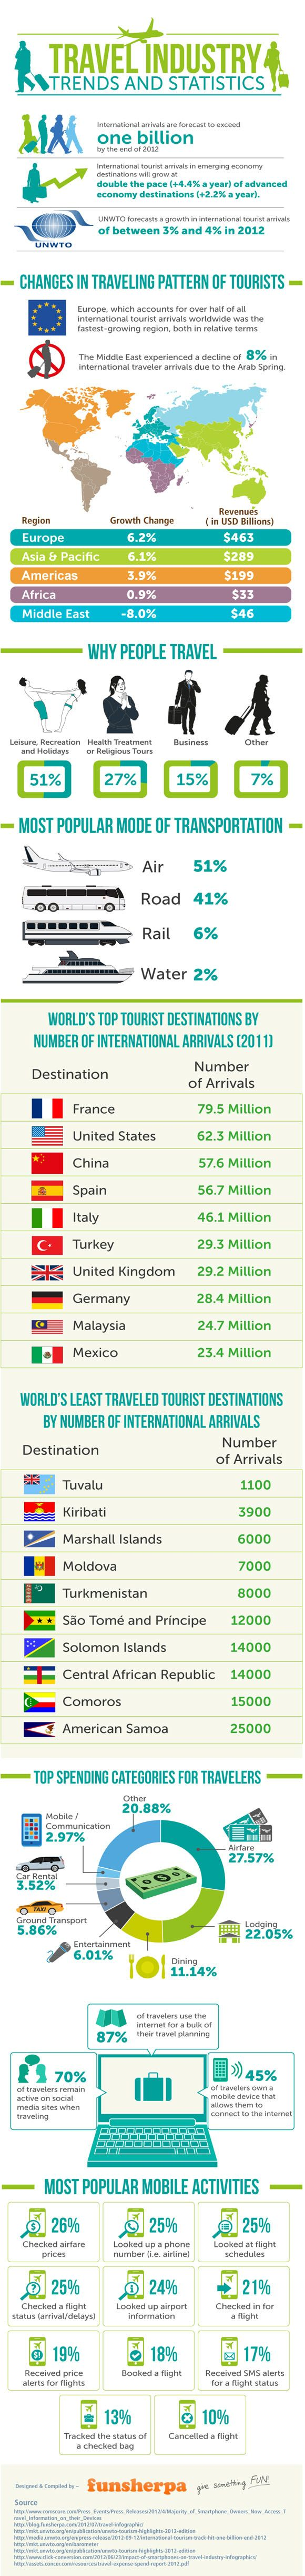 #Travel industry #Trends and statistics - Oct 2012 infographic #travelstats @Funsherpa.com